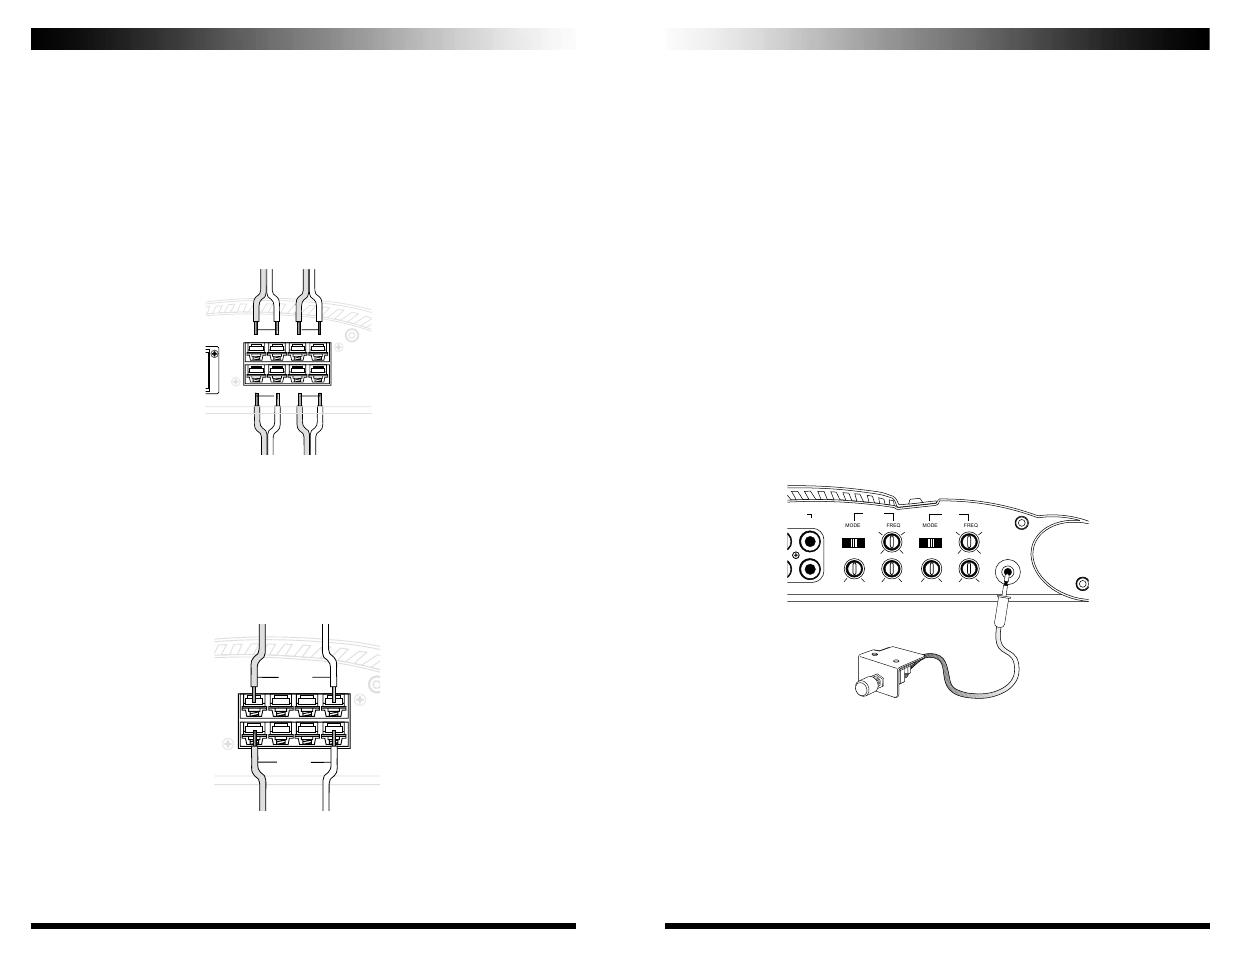 Coustic Amp Wiring Diagram Library Elkhart Sidewinder Joystick 320qe User Manual Page 6 11